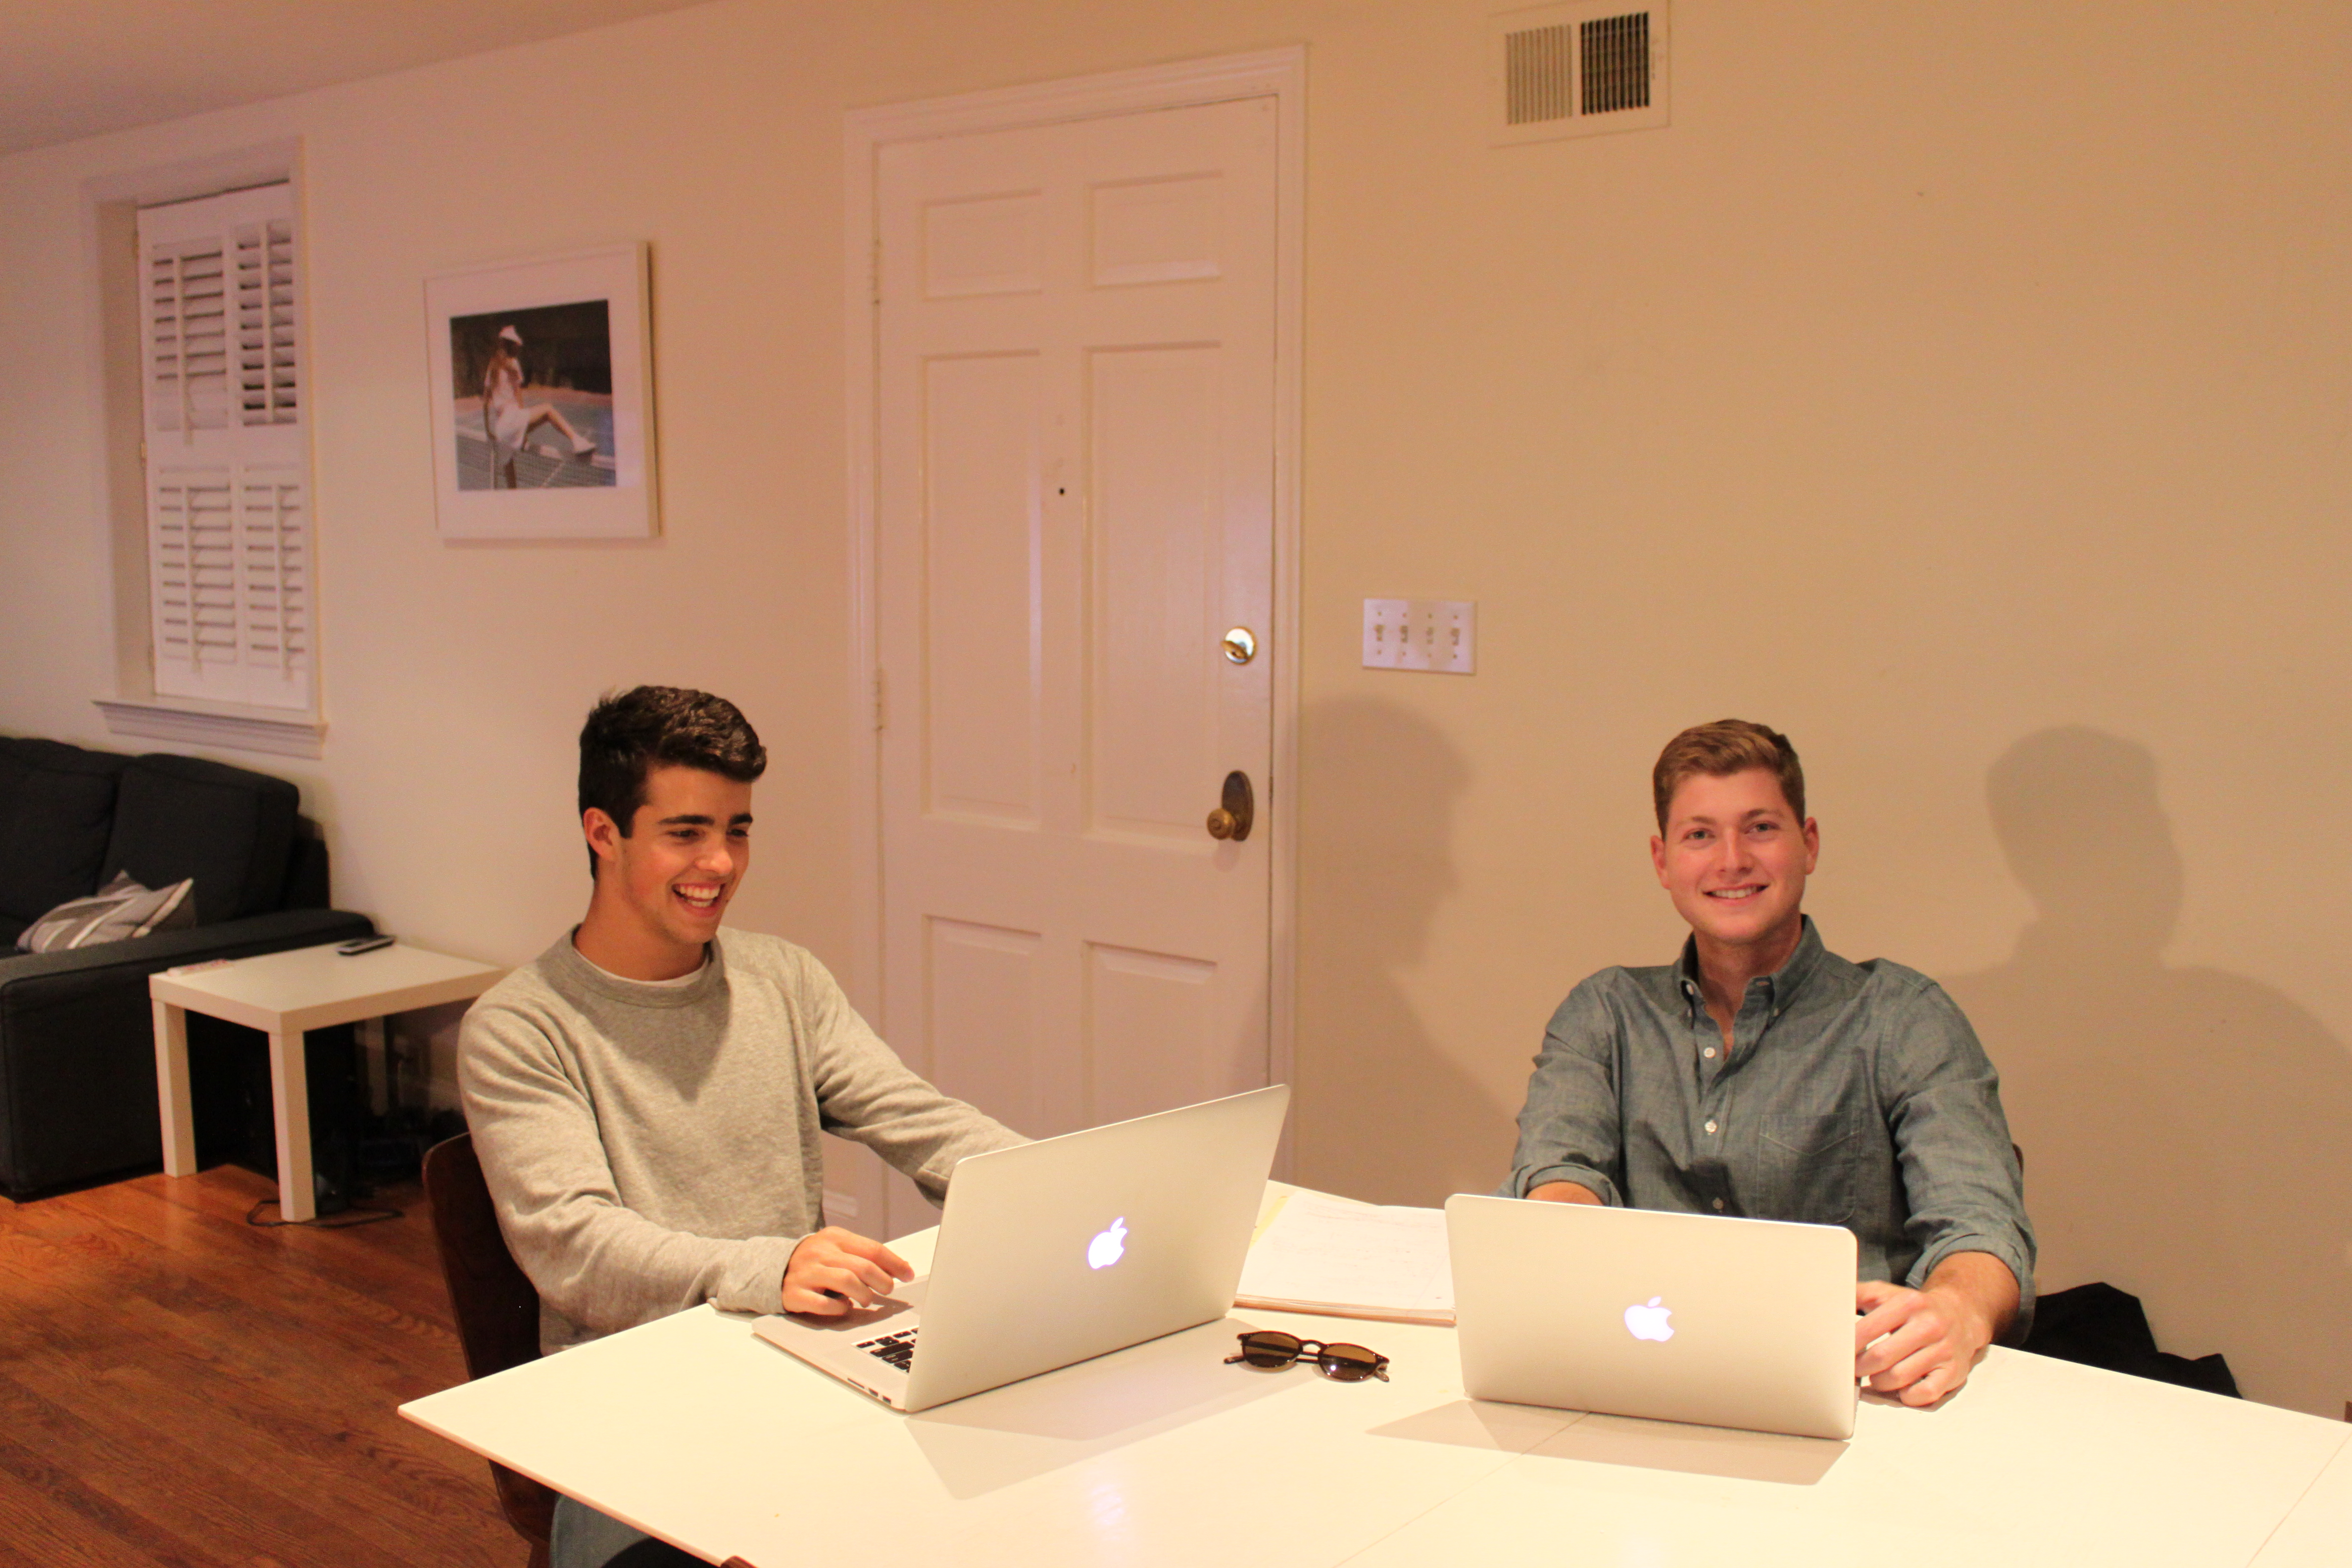 COURTESY KEVIN FLEISHMAN Founders of Outcome Tutoring, Alejandro Ernst (MSB '18) and Kevin Fleishman (MSB '18) work to develop their business. The company currently has 29 tutors and has tutored approximately 120 students in the past three weeks alone.